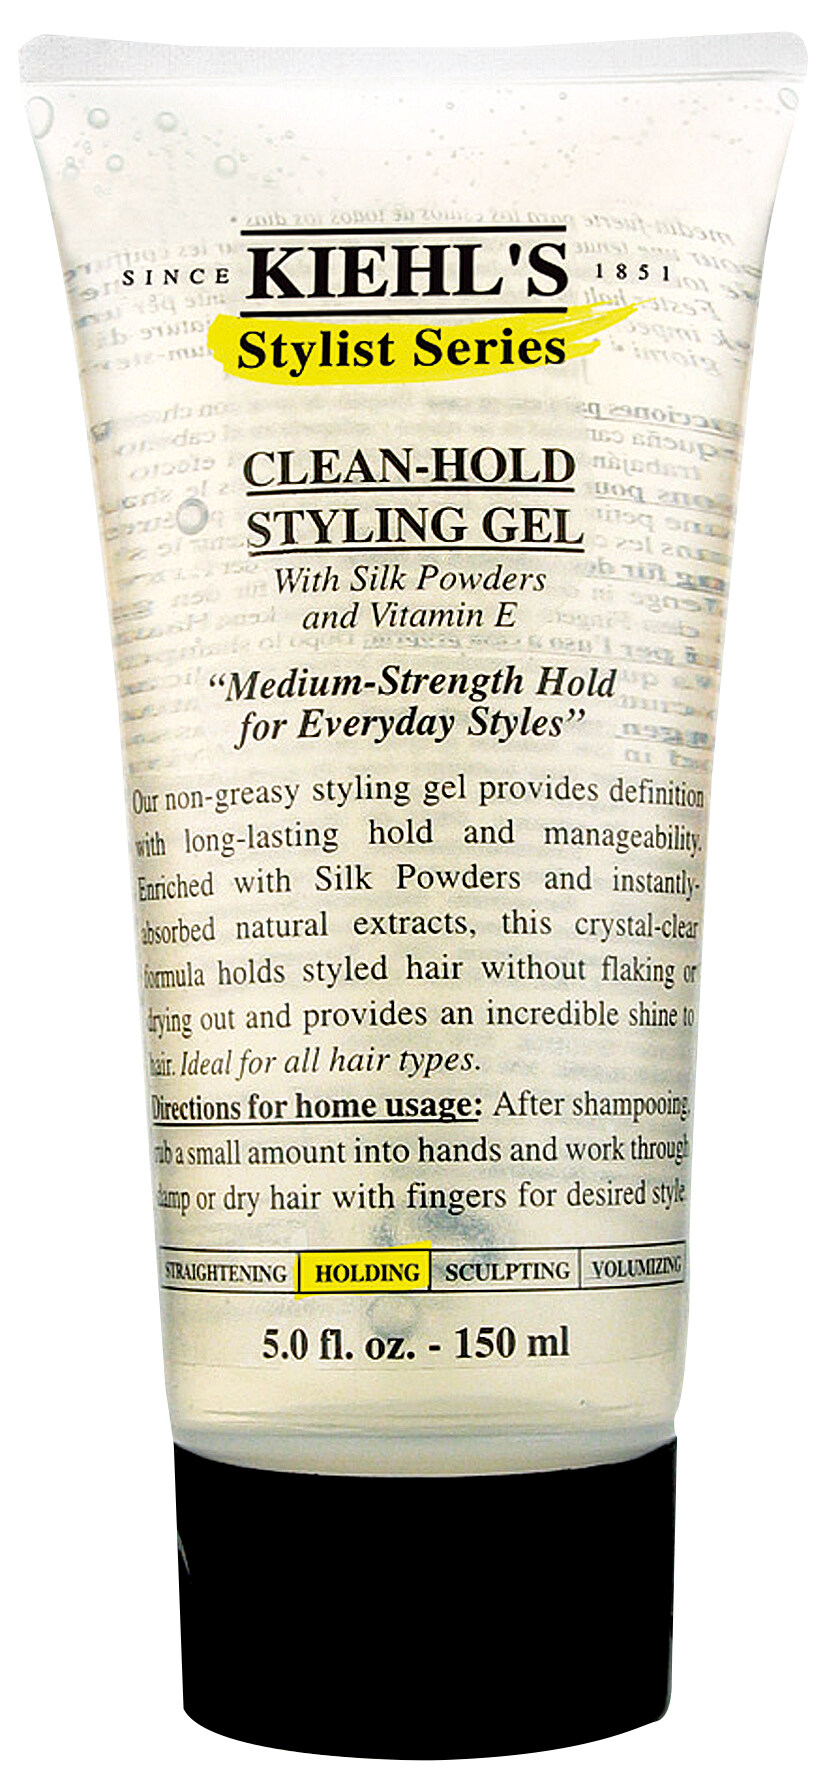 Kiehl's Stylish Series Clean-Hold Styling Gel($145)